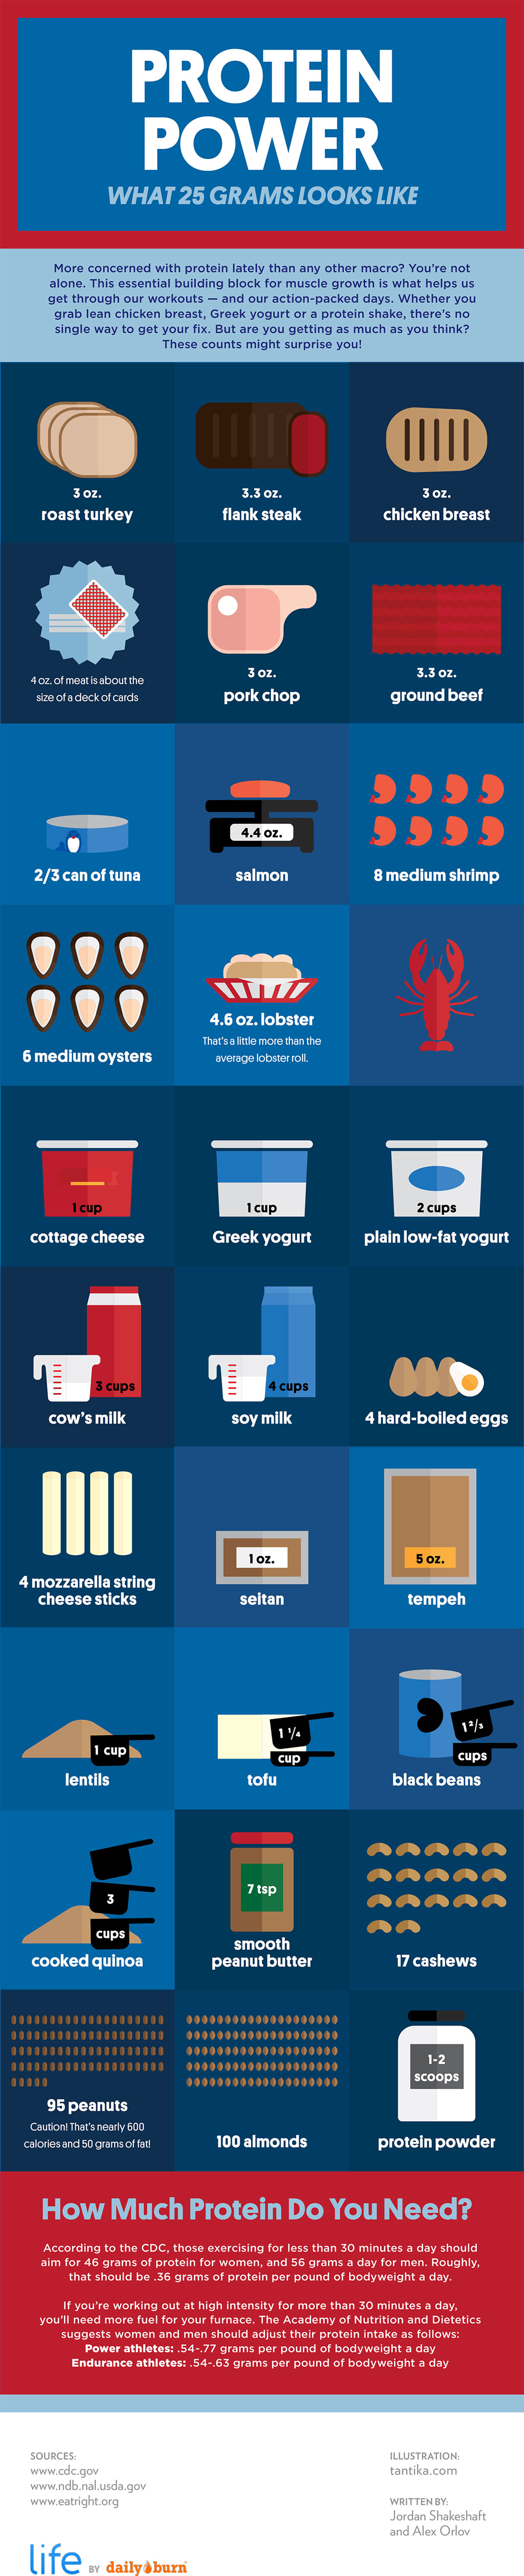 From http://dailyburn.com/life/health/protein-sources-infographic/